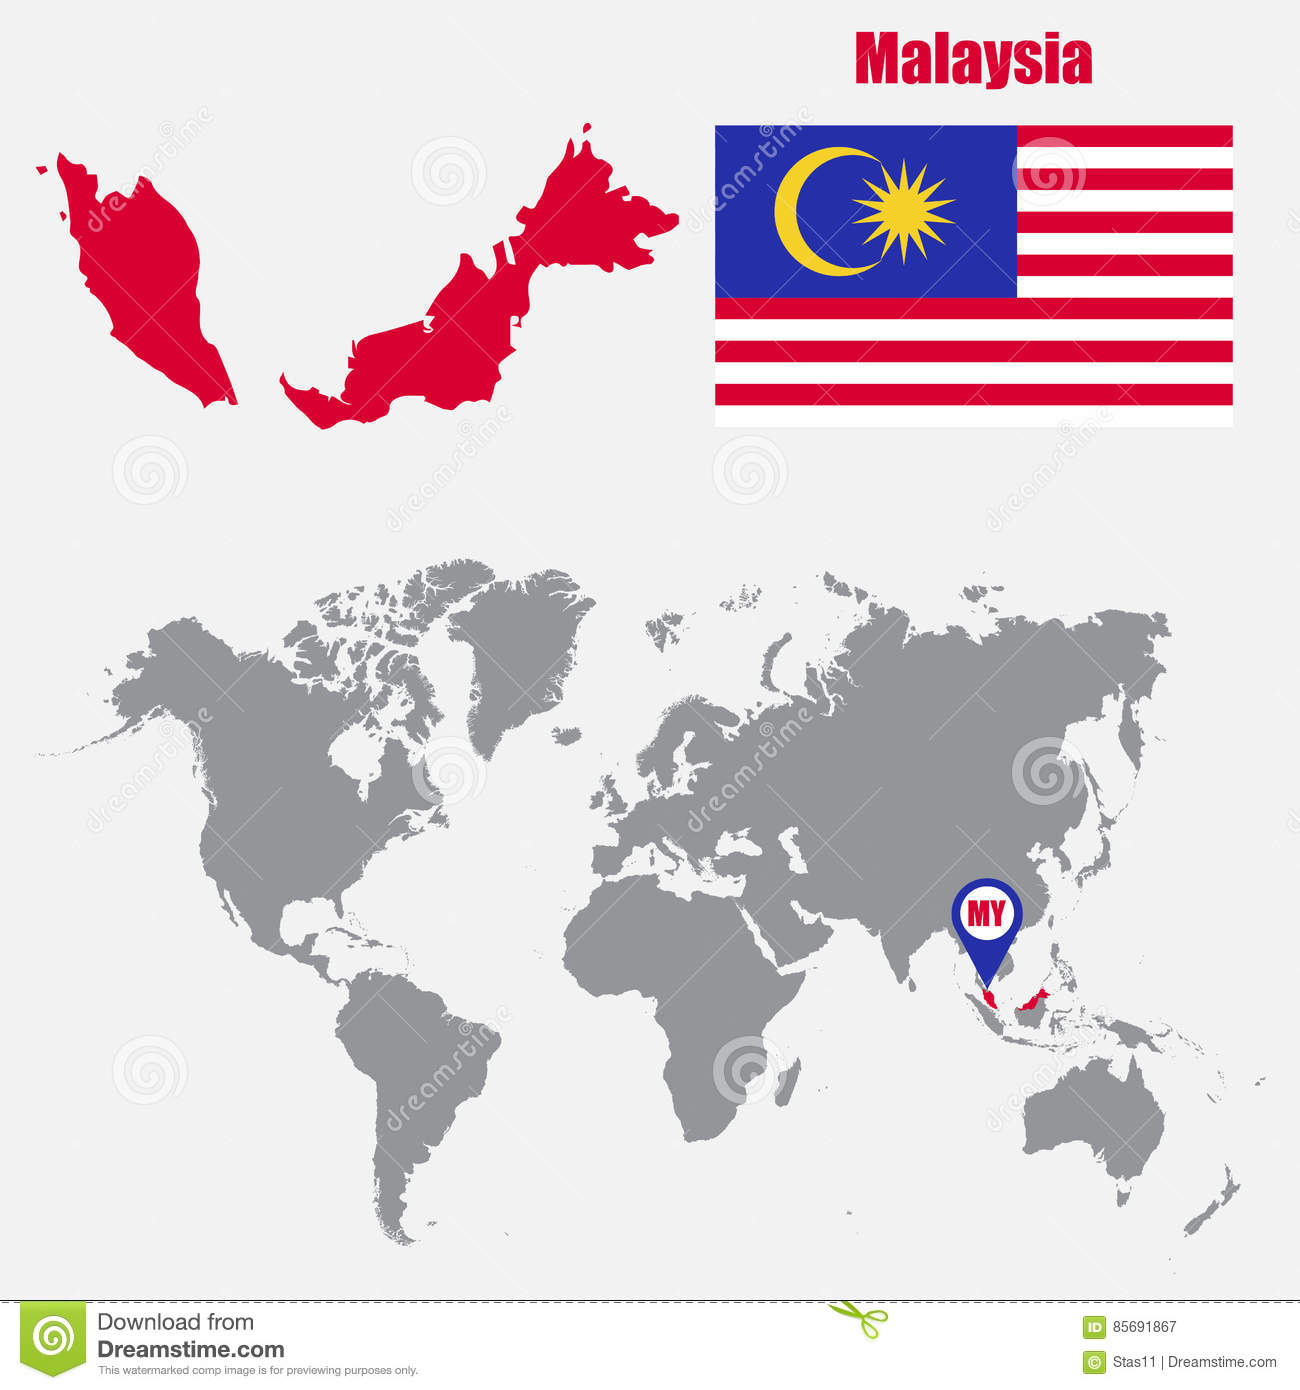 Malaysia On The World Map.Malaysia Map On A World Map With Flag And Map Pointer Vector